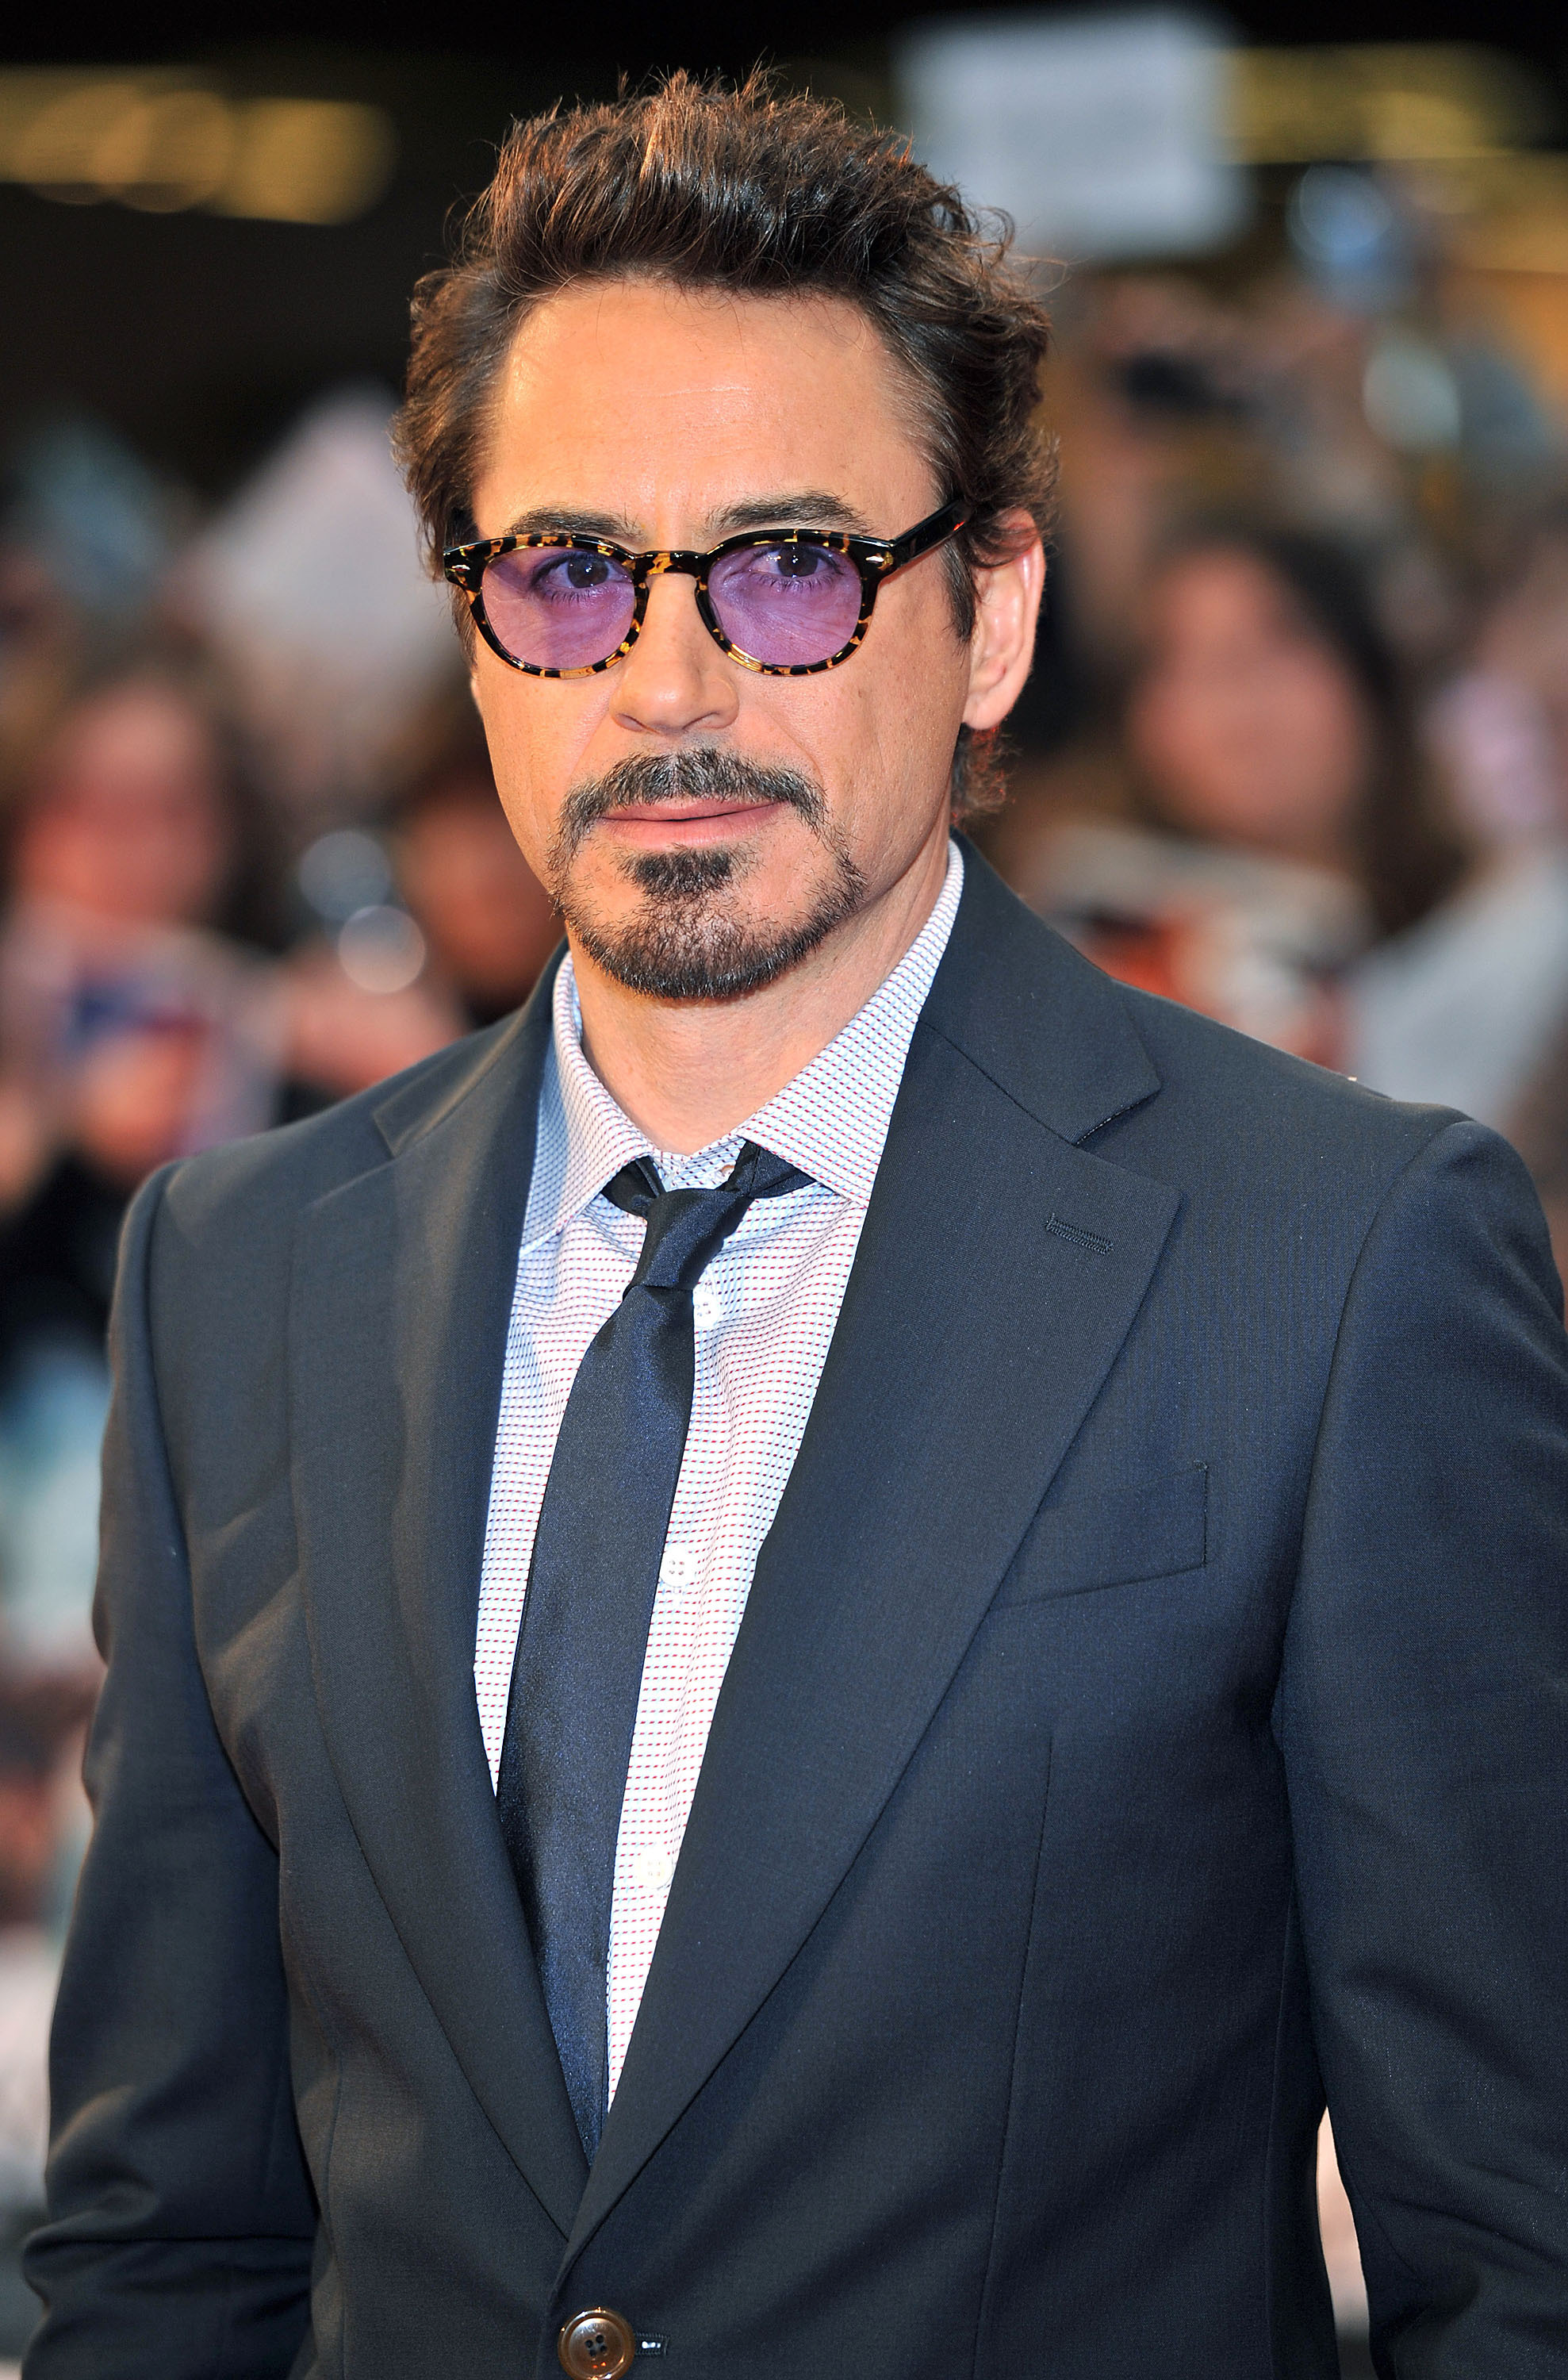 My Life In Movies 1992 in addition Jennifer Lawrence Bra Size Age Weight Height Measurements additionally Prepare For The Prom From Hell With These New Carrie Images additionally Sex Drugs And Revolution Top Foreign Films That Didnt Make The Oscars also Robert Downey  Jr. on oscar nominations 2012 list